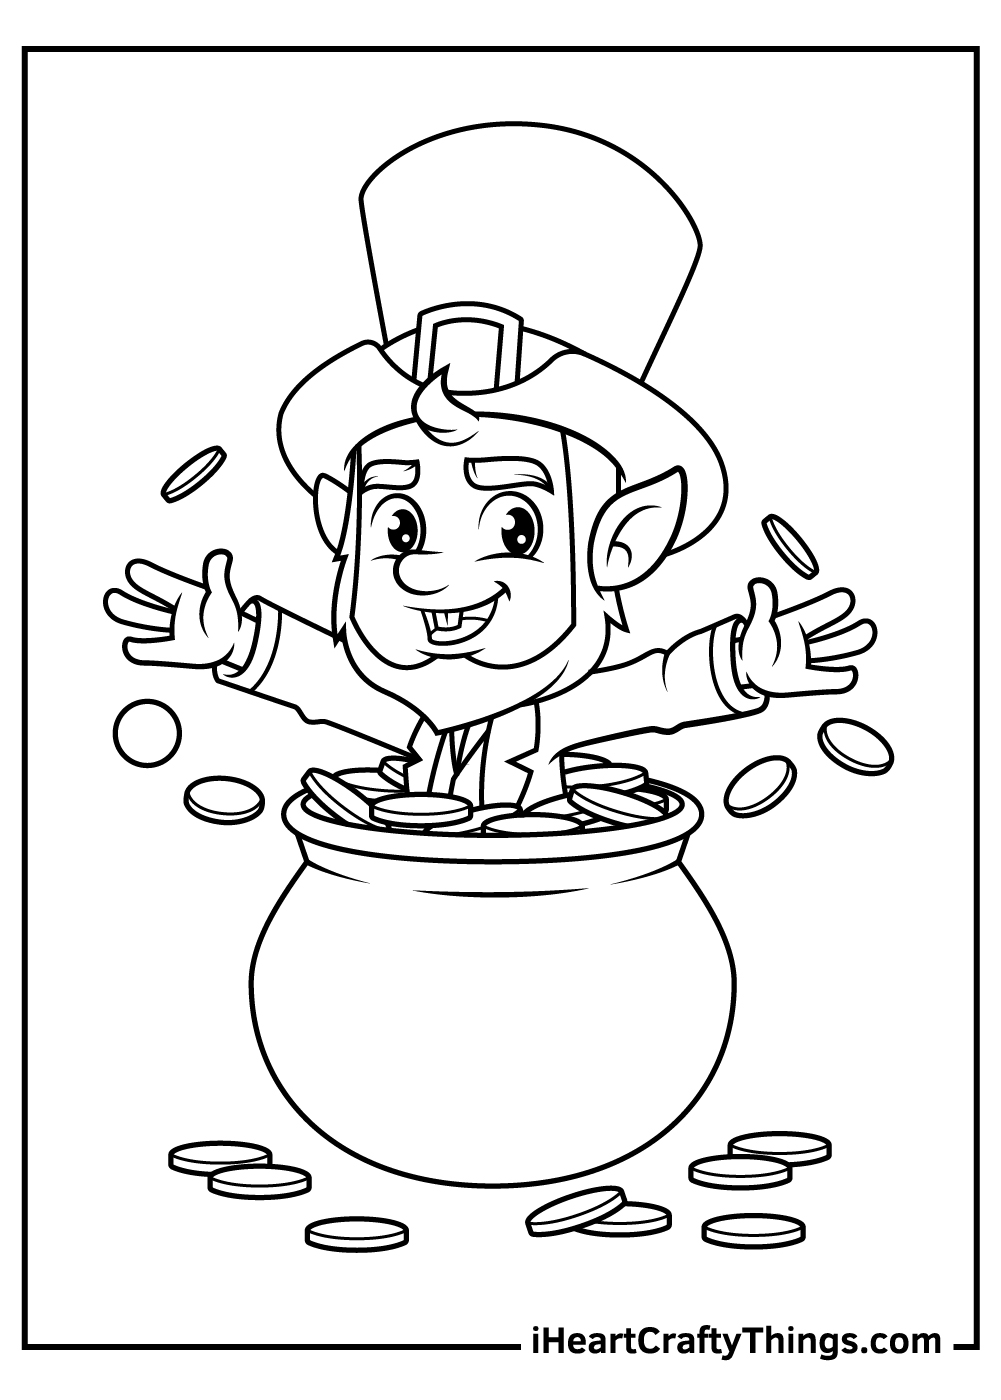 st patrick's day leprechaun coloring pages